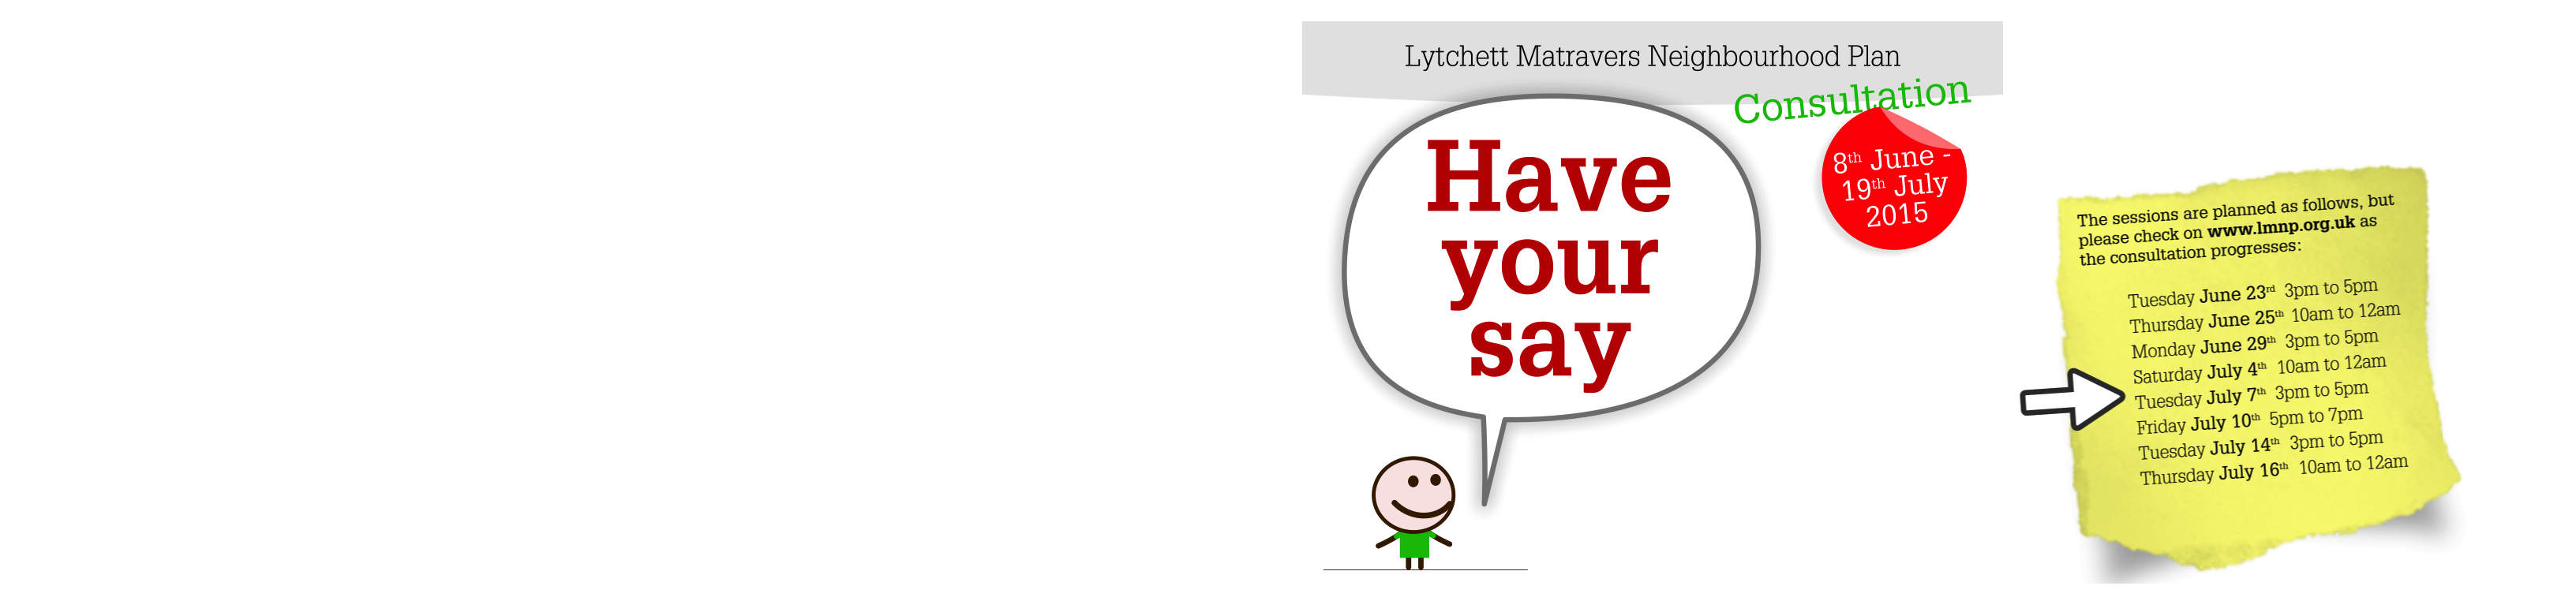 Lytchett Matravers Neighbourhood Plan